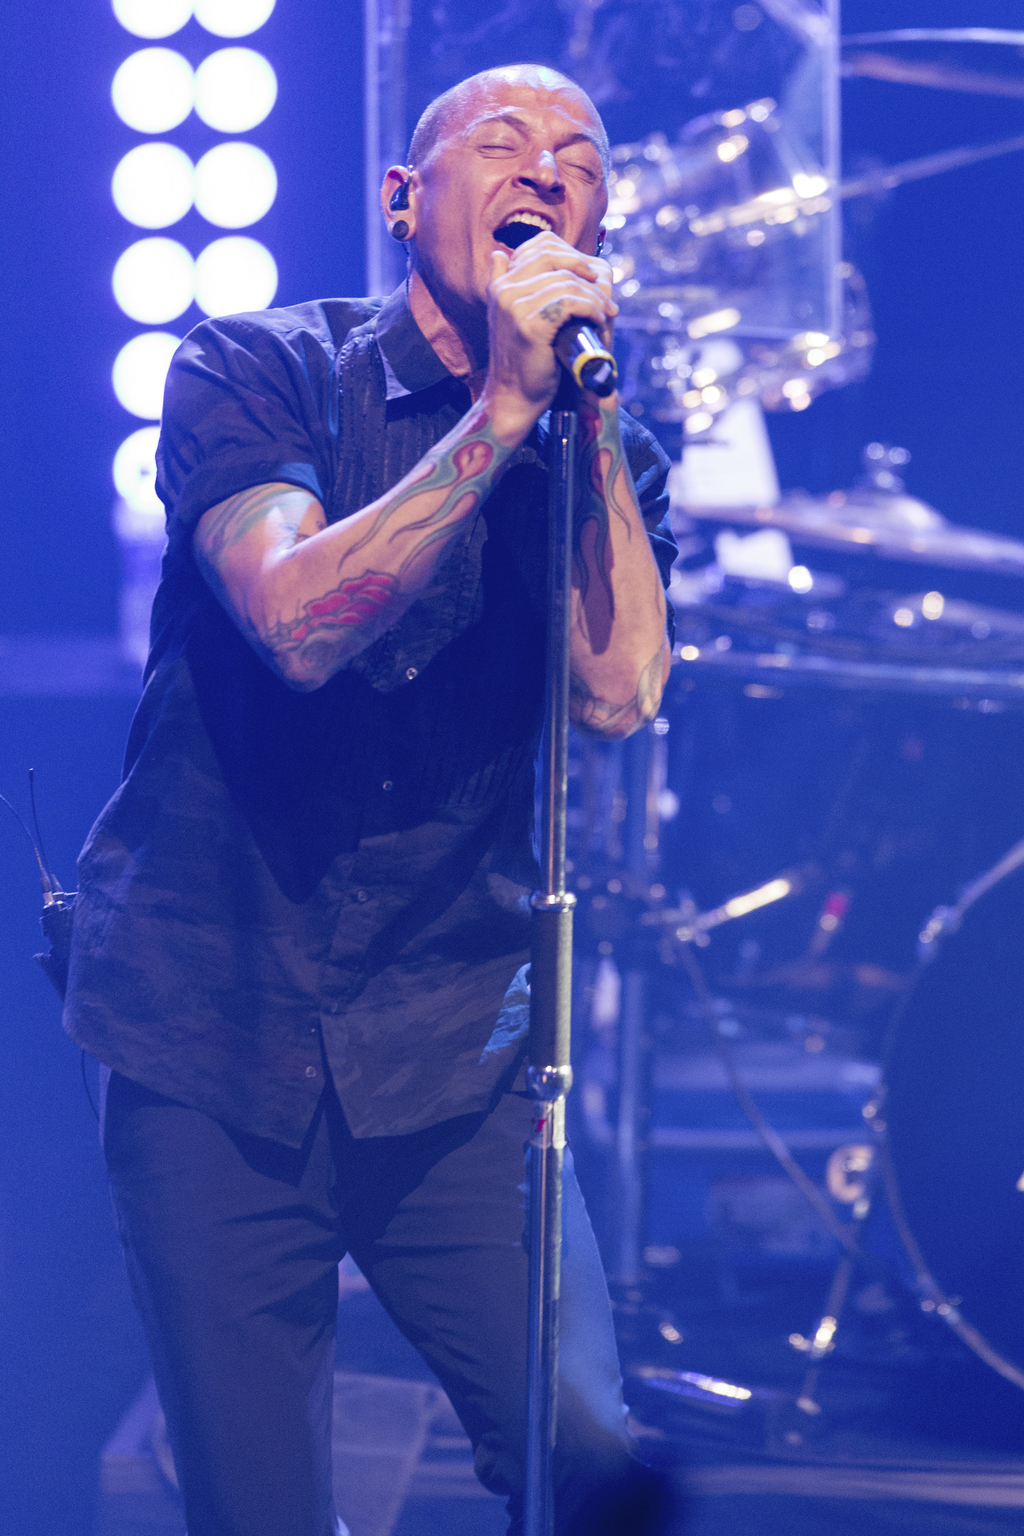 FILE - In this June 18, 2014 file photo, Chester Bennington of Linkin Park performs during the iHeartRadio Live Series in Burbank, Calif. The Los Ange...